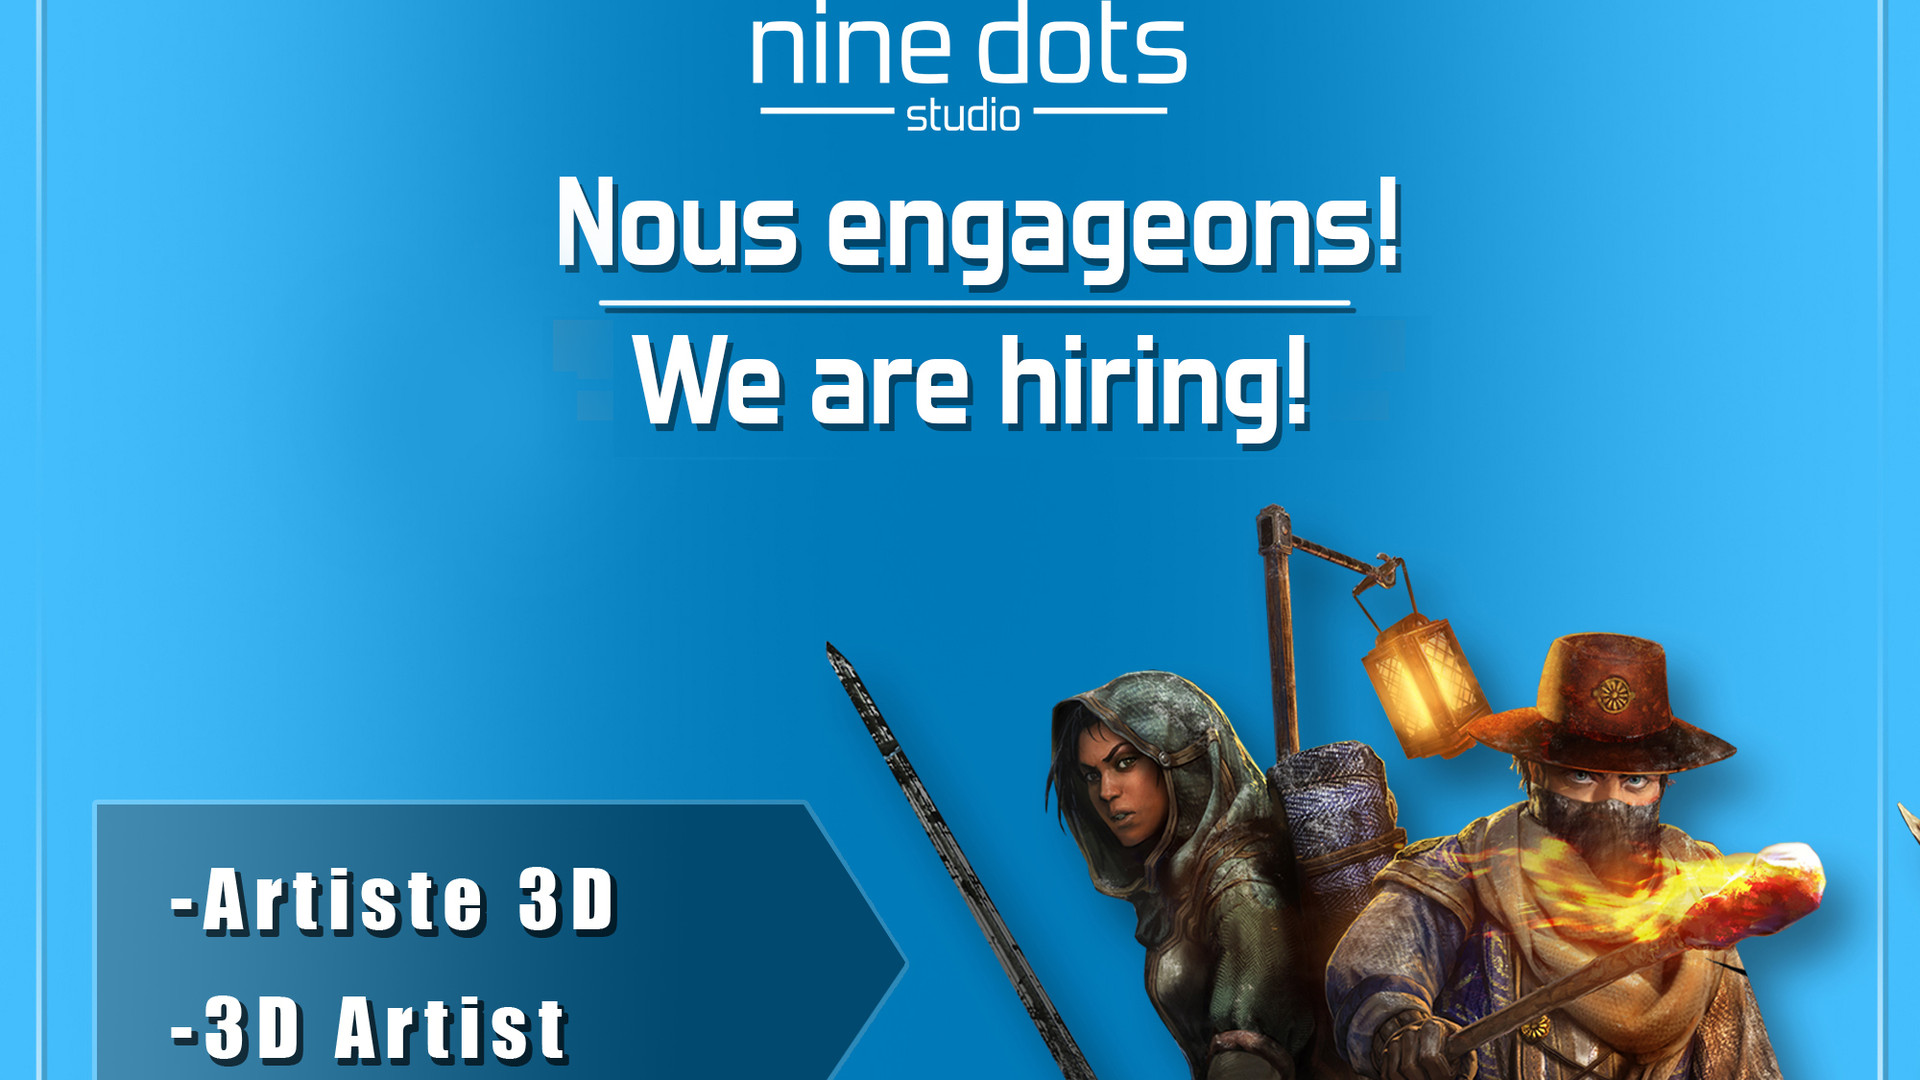 (Update: positions filled- Mise à jour: complet) We're hiring! Nous engageons!